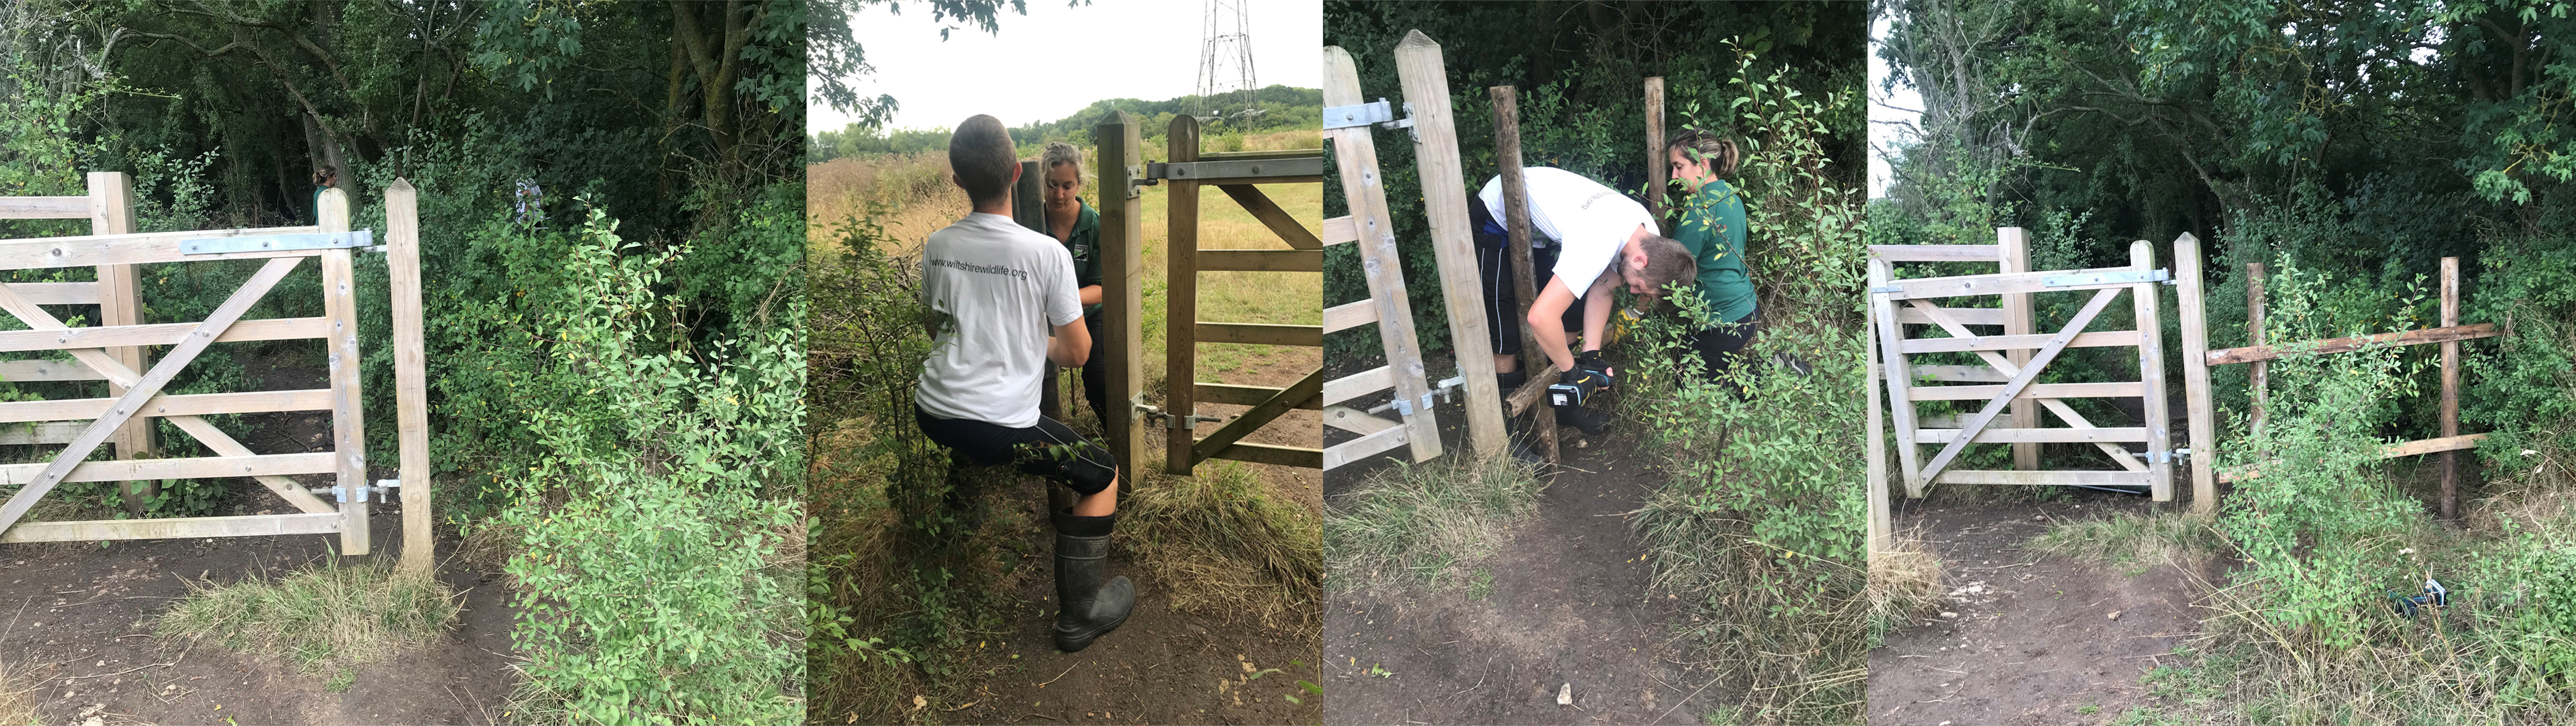 Day in the life of an estates worker, repairing a kissing gate